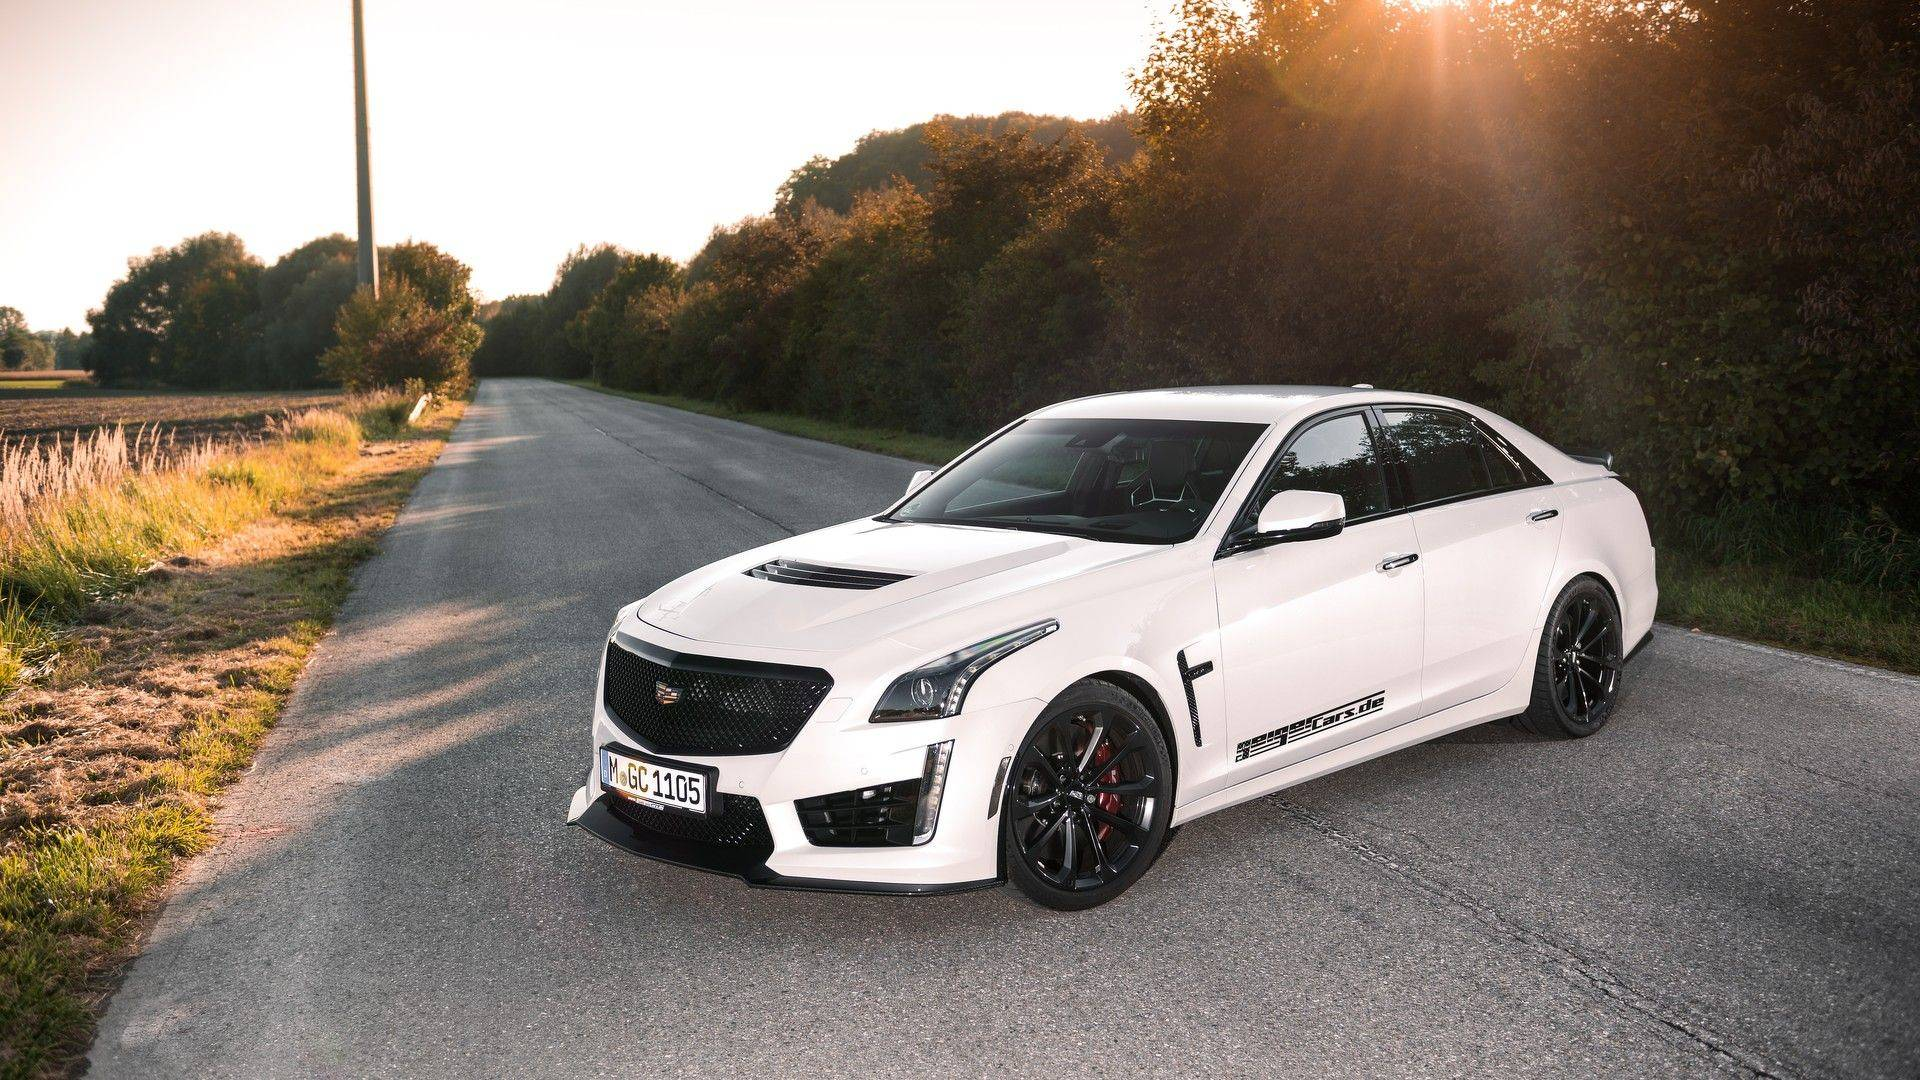 cadillac-cts-v-by-geigercars (2)